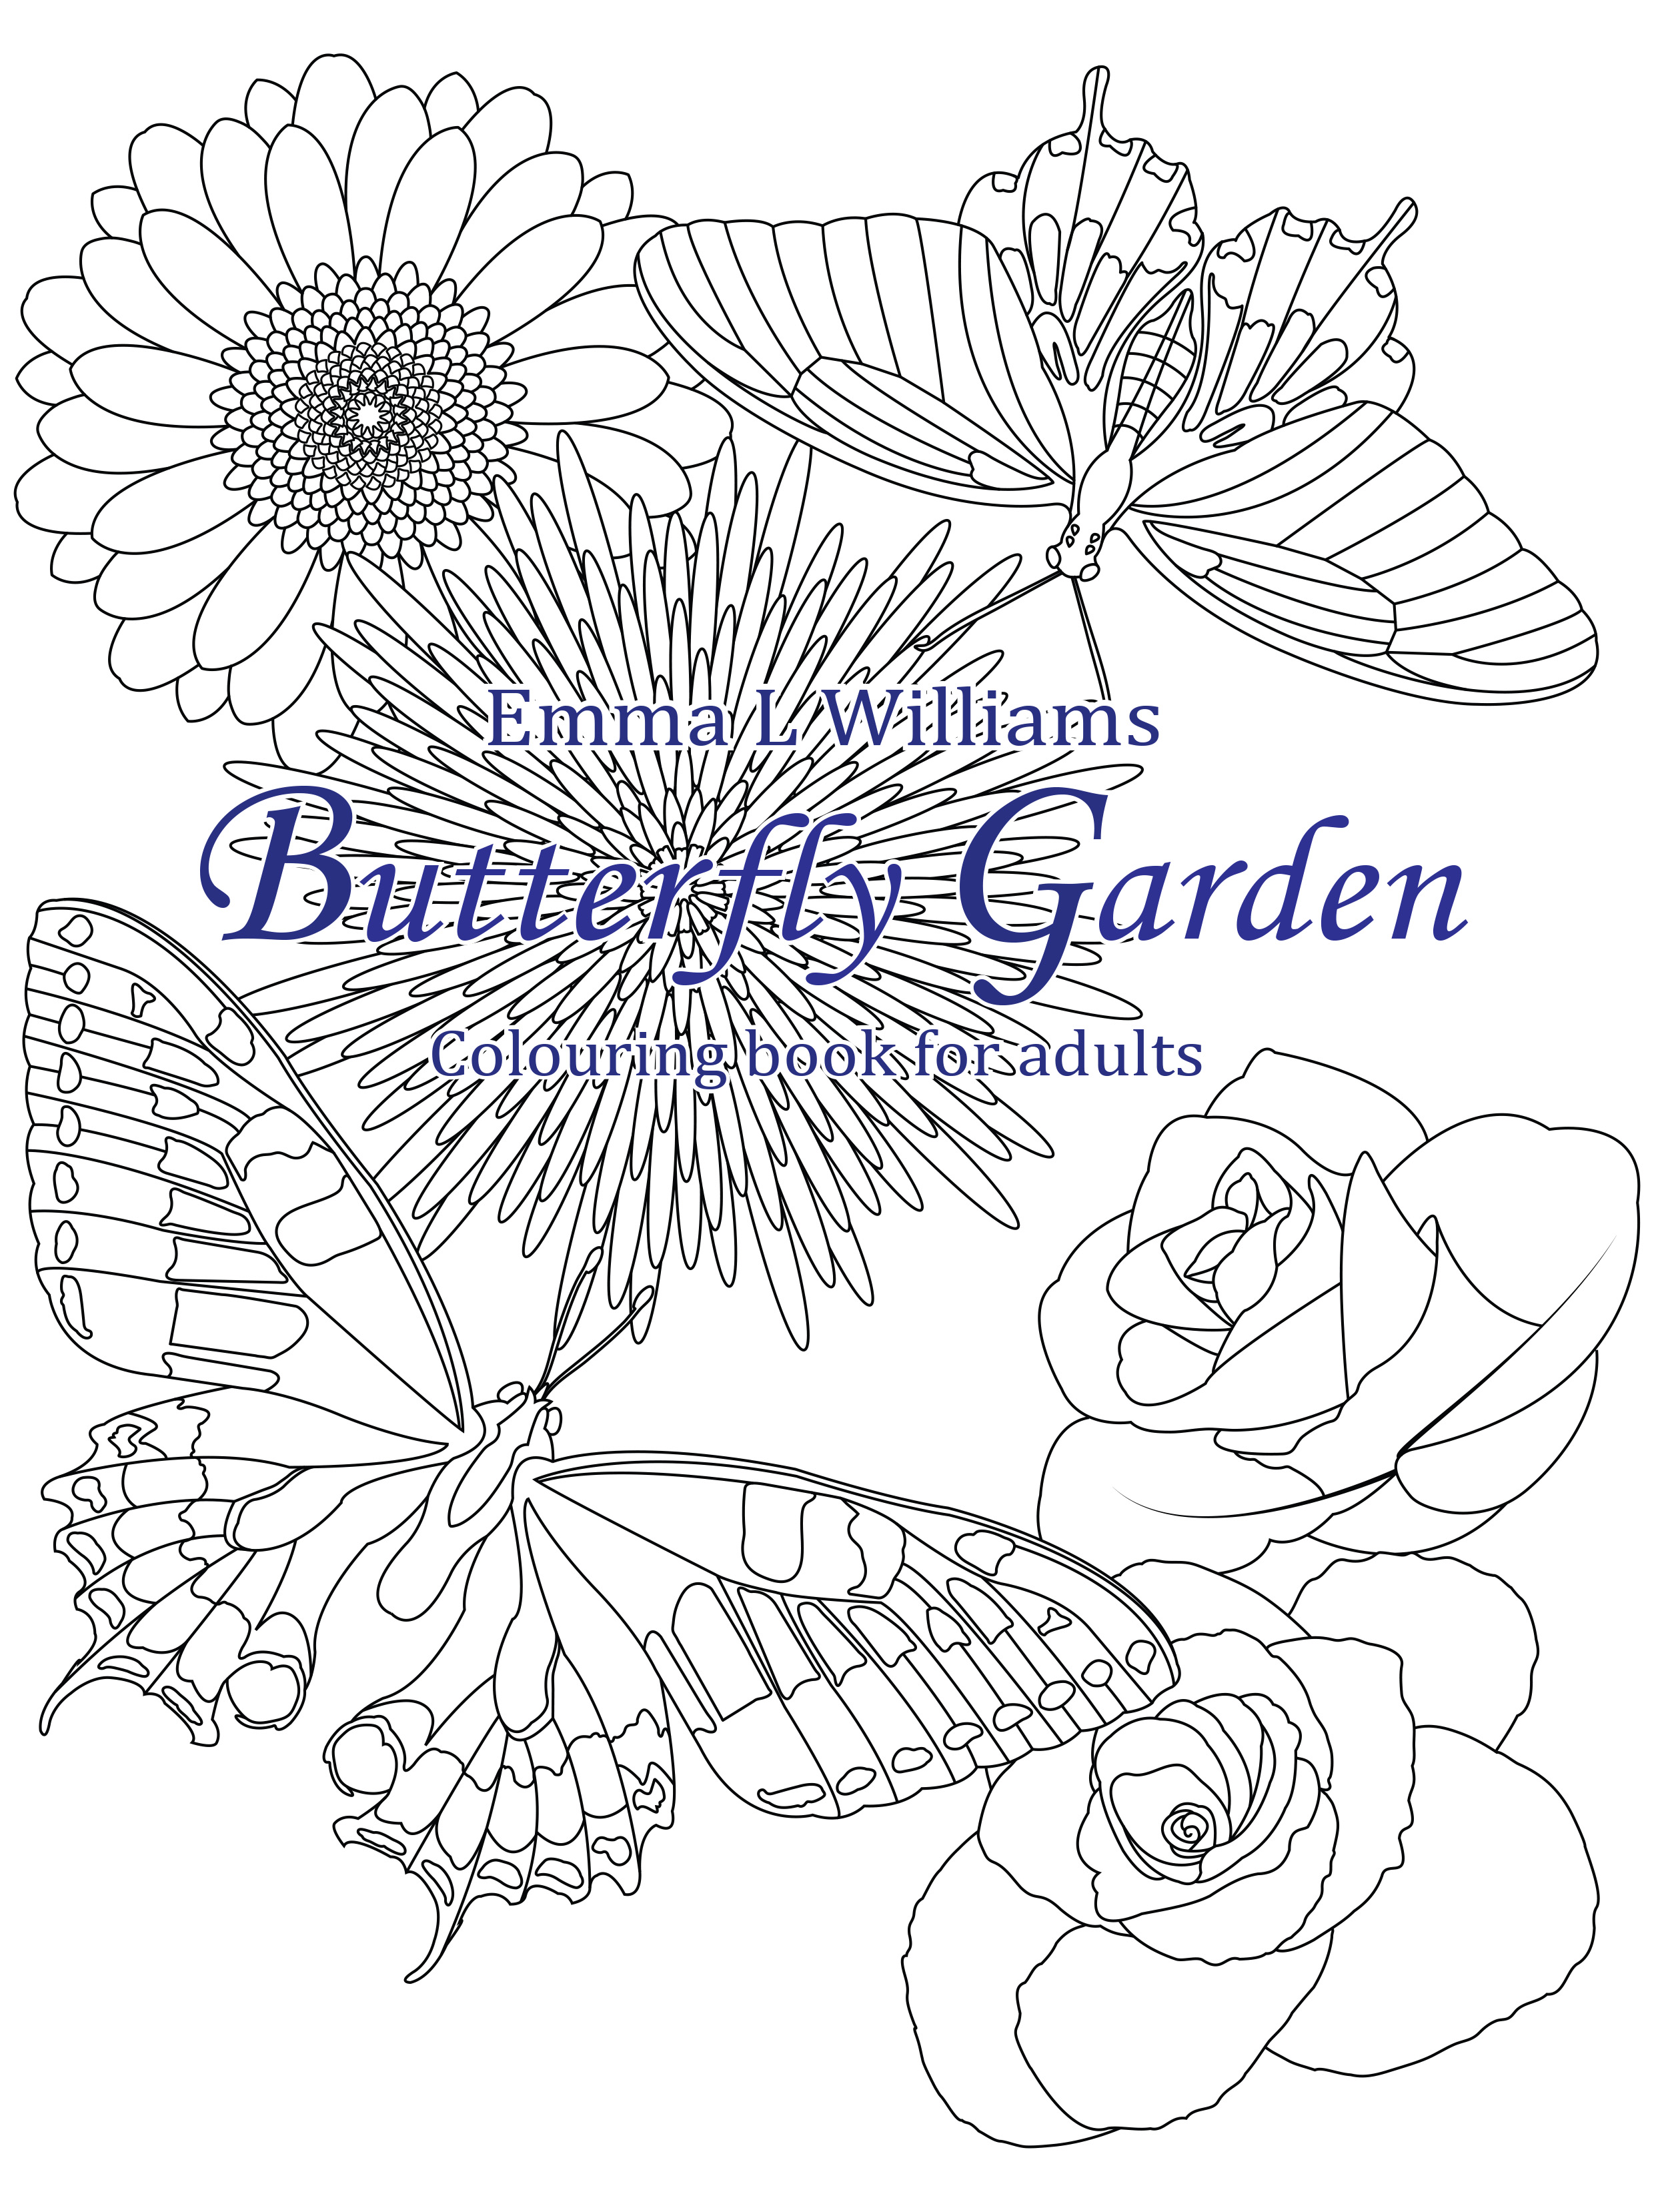 HIDDEN | The blog - Coloring pages for adults | JustColor